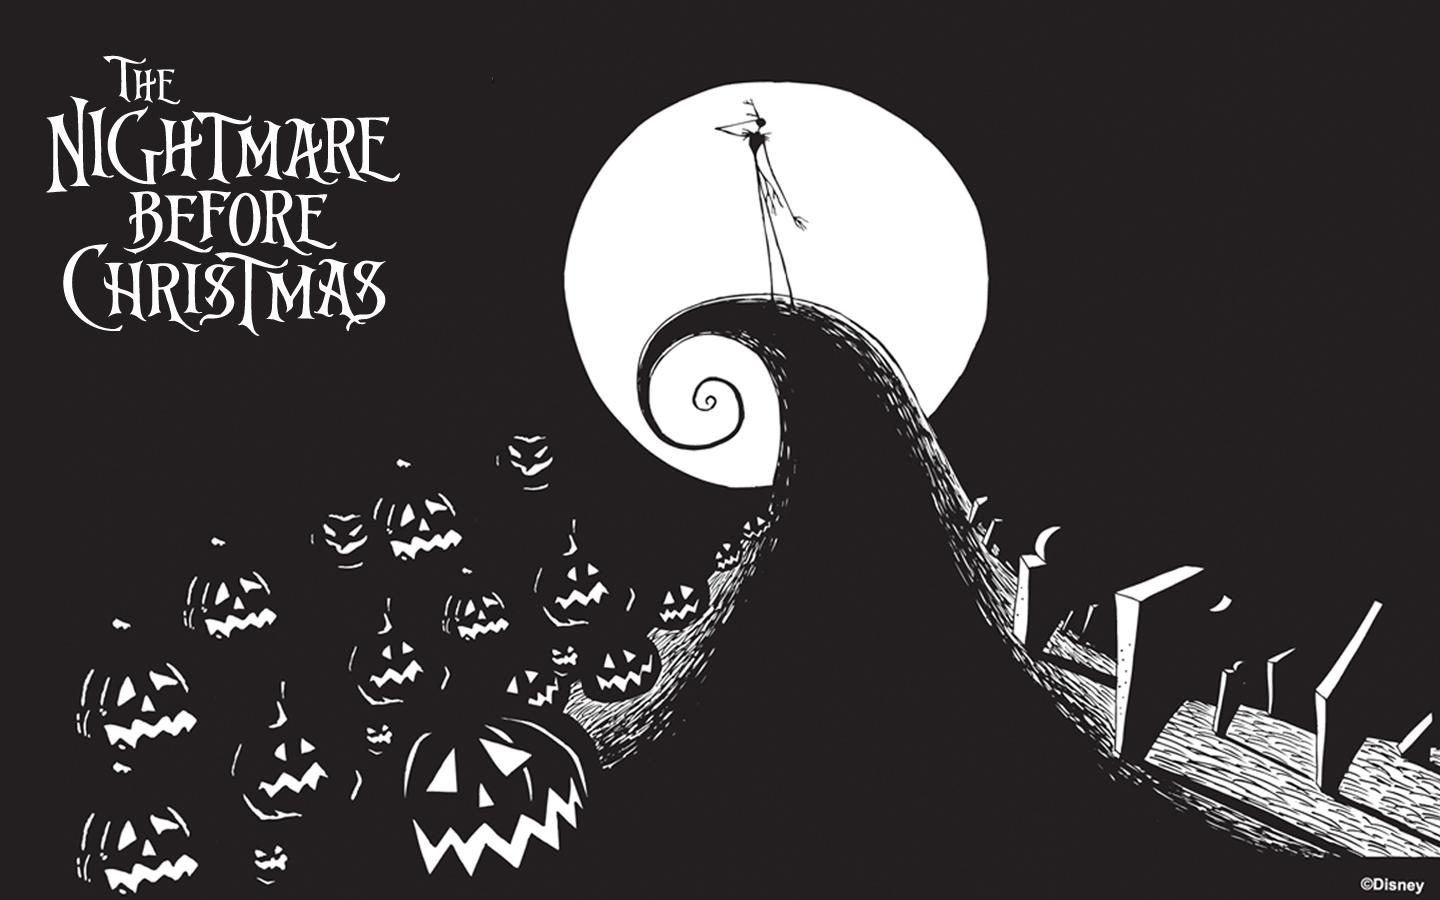 Free Download Nightmare Before Christmas Wallpaper Desktop